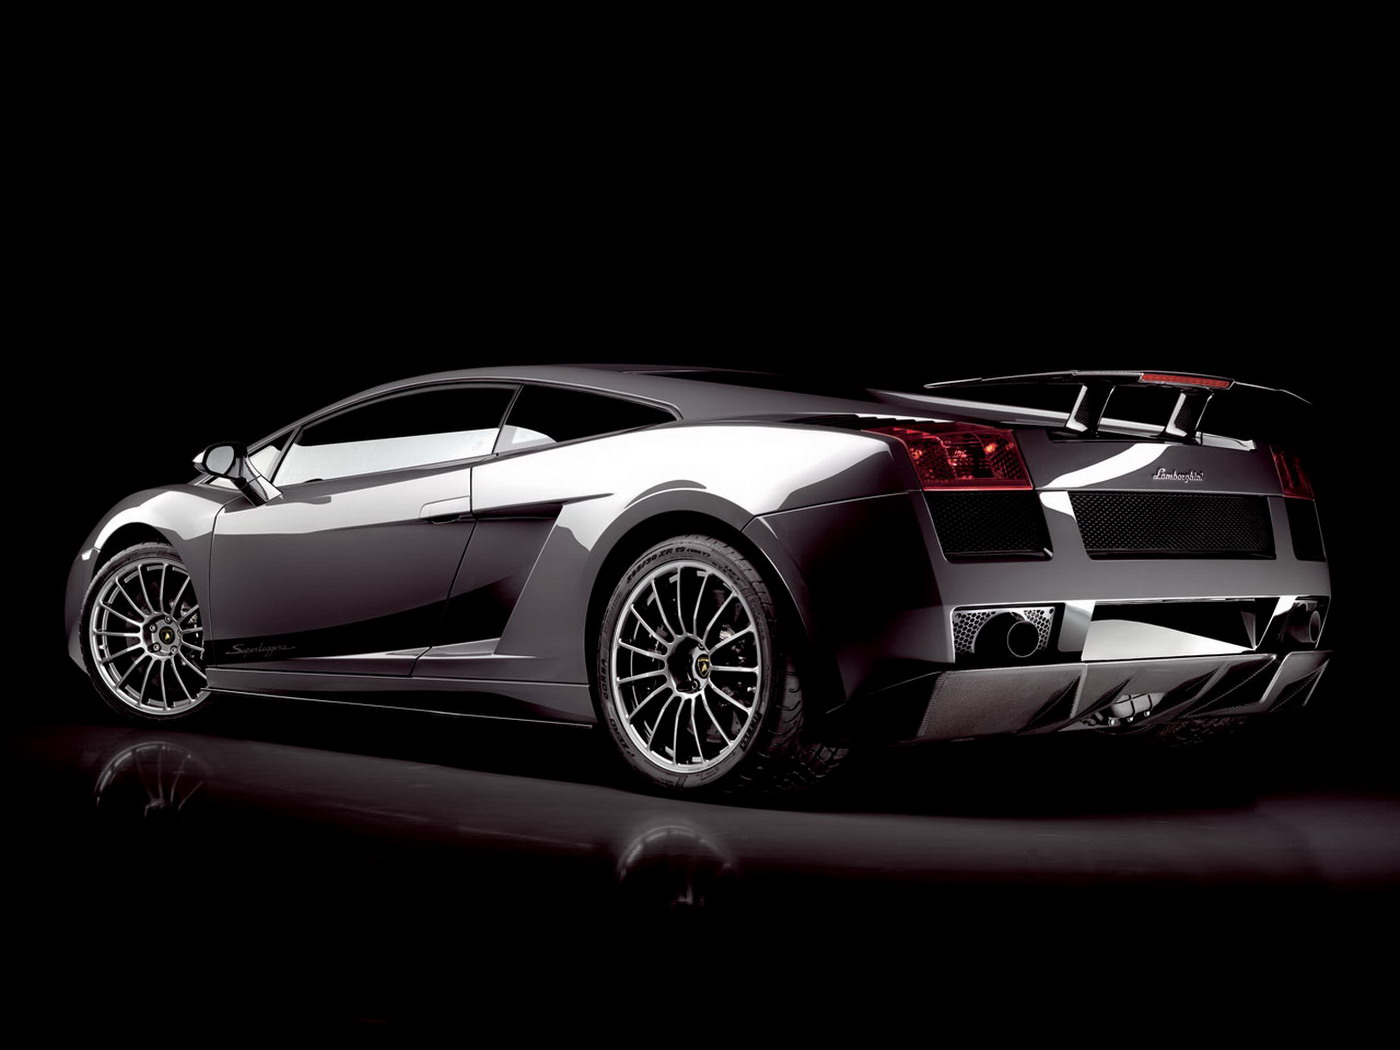 Hd Cars Wallpapers | The Fast Cars